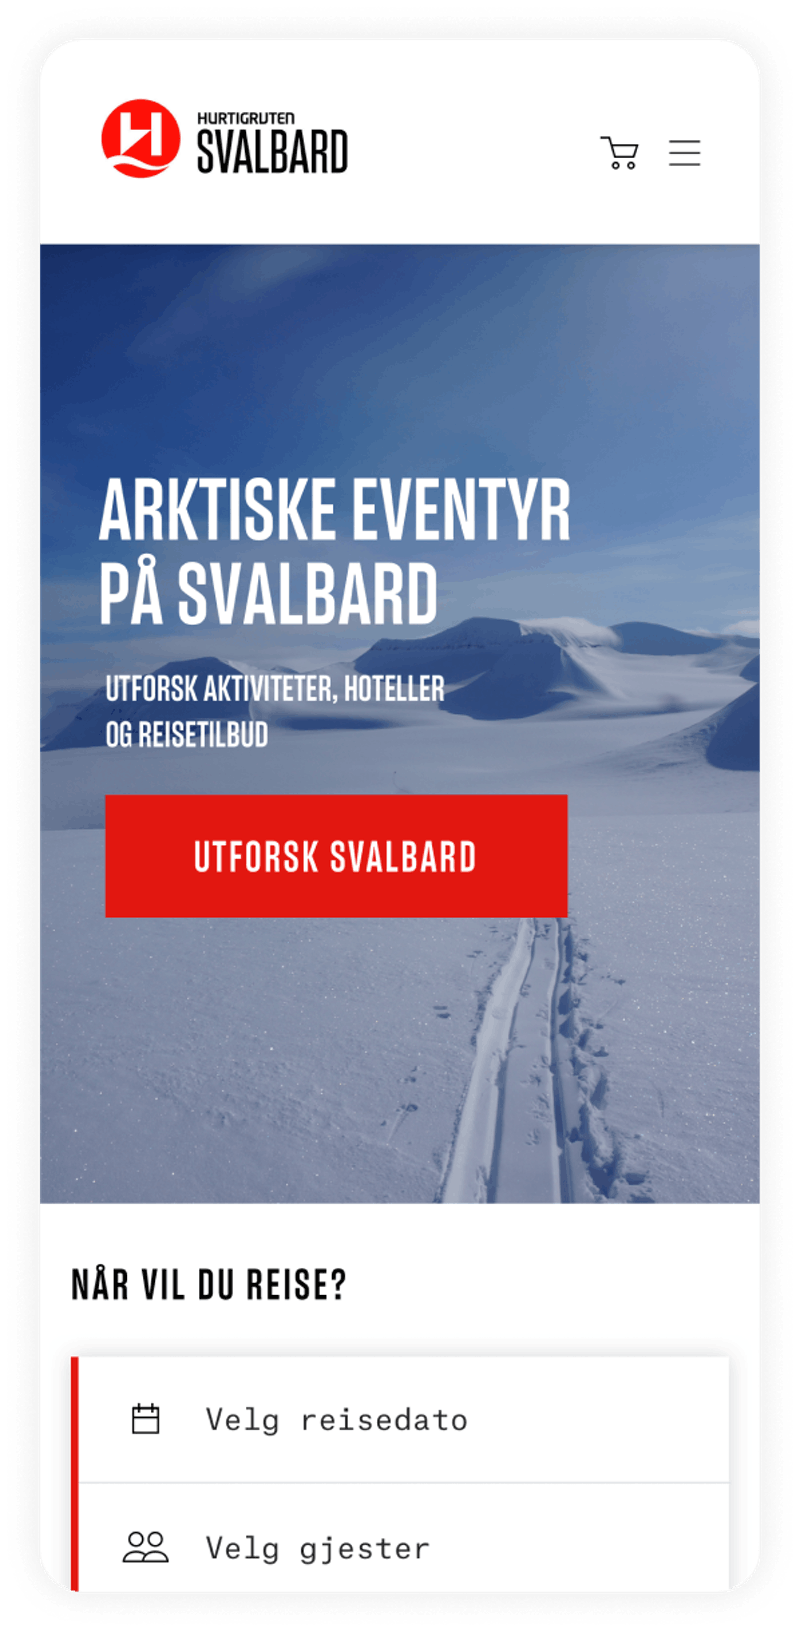 Hurtigruten Svalbard Front page Mobile